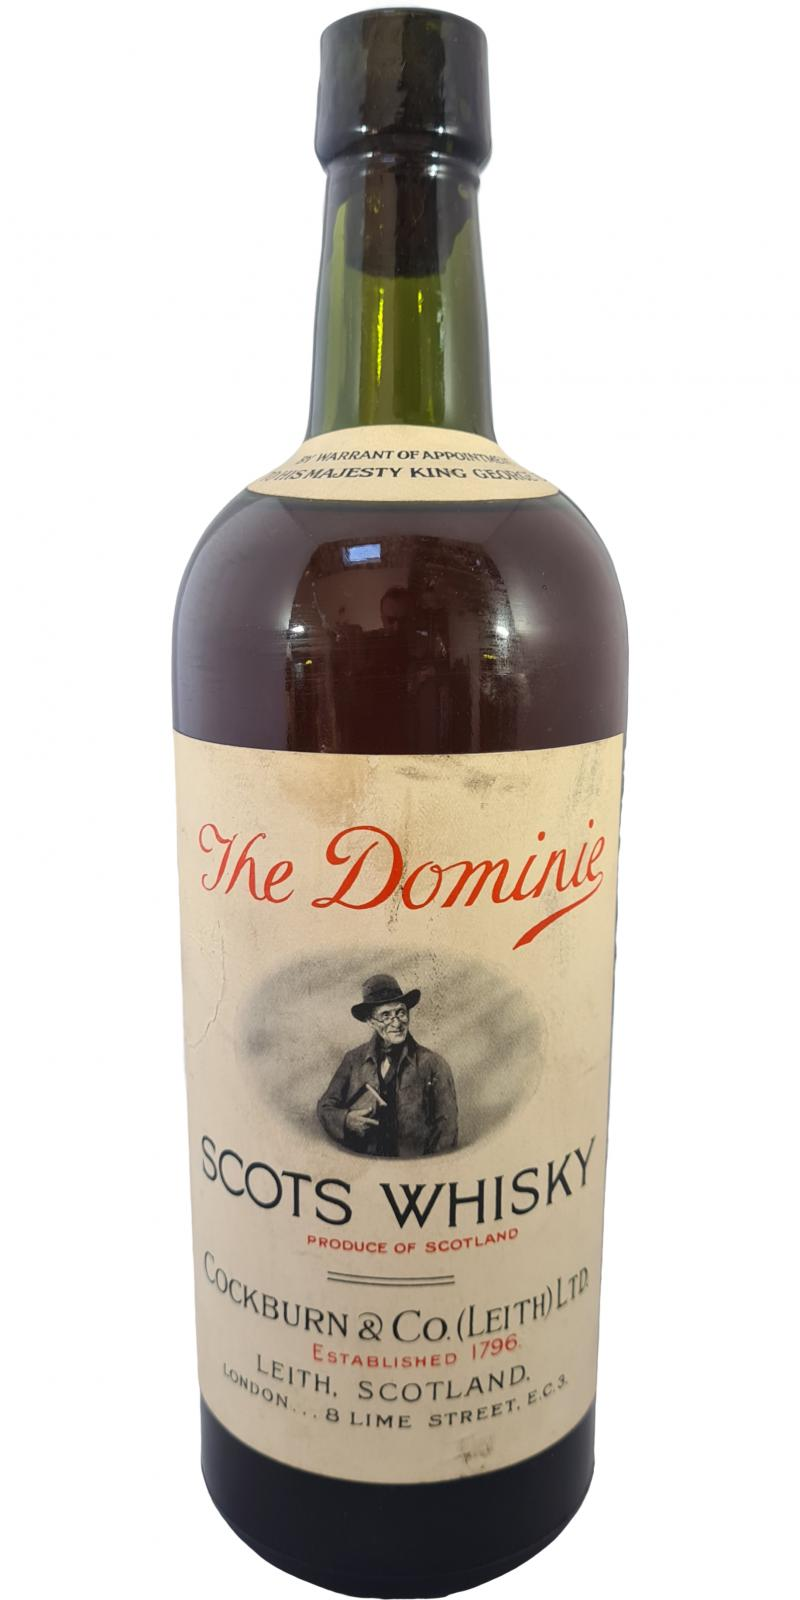 The Dominie Scots Whisky